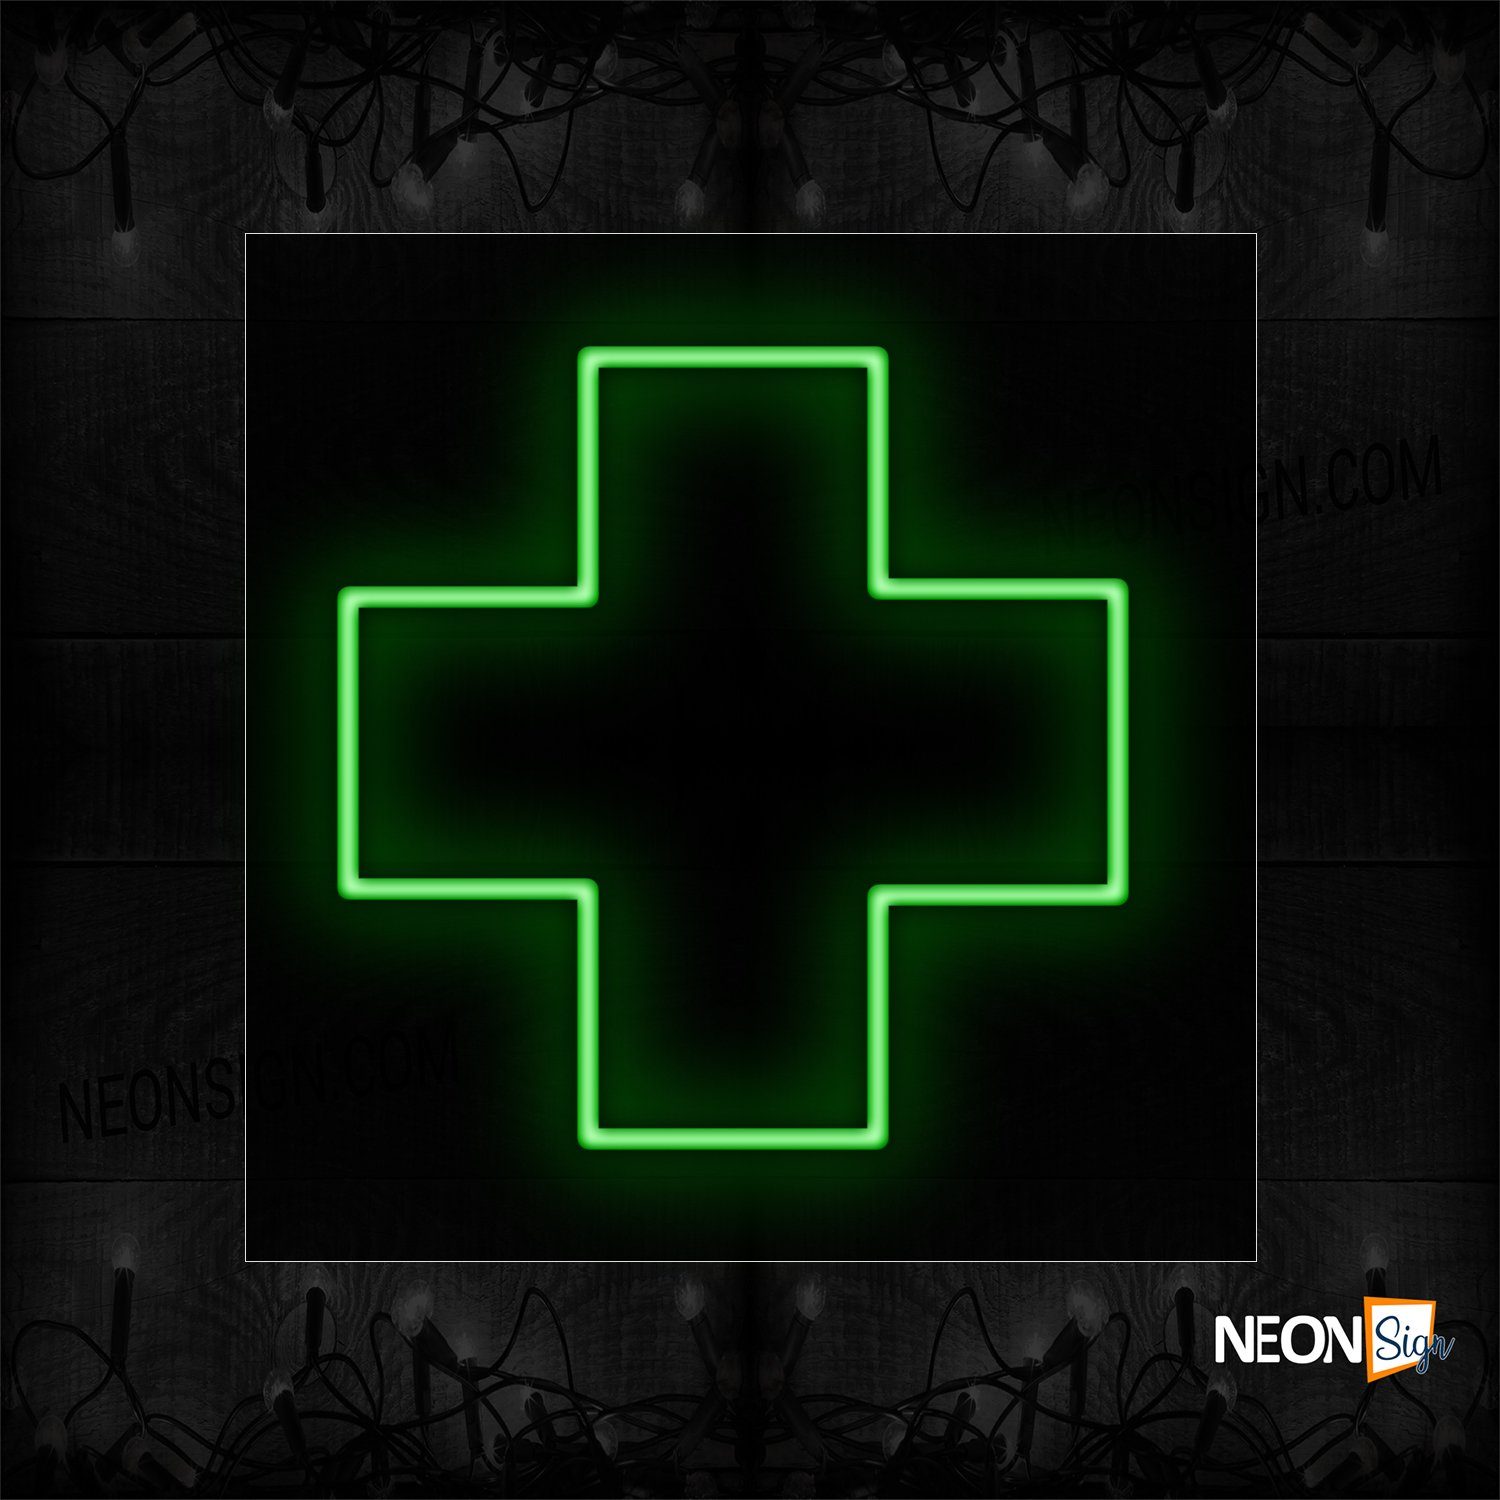 Image of 12426 Green Cross Traditional Neon_17x17 Black Backing